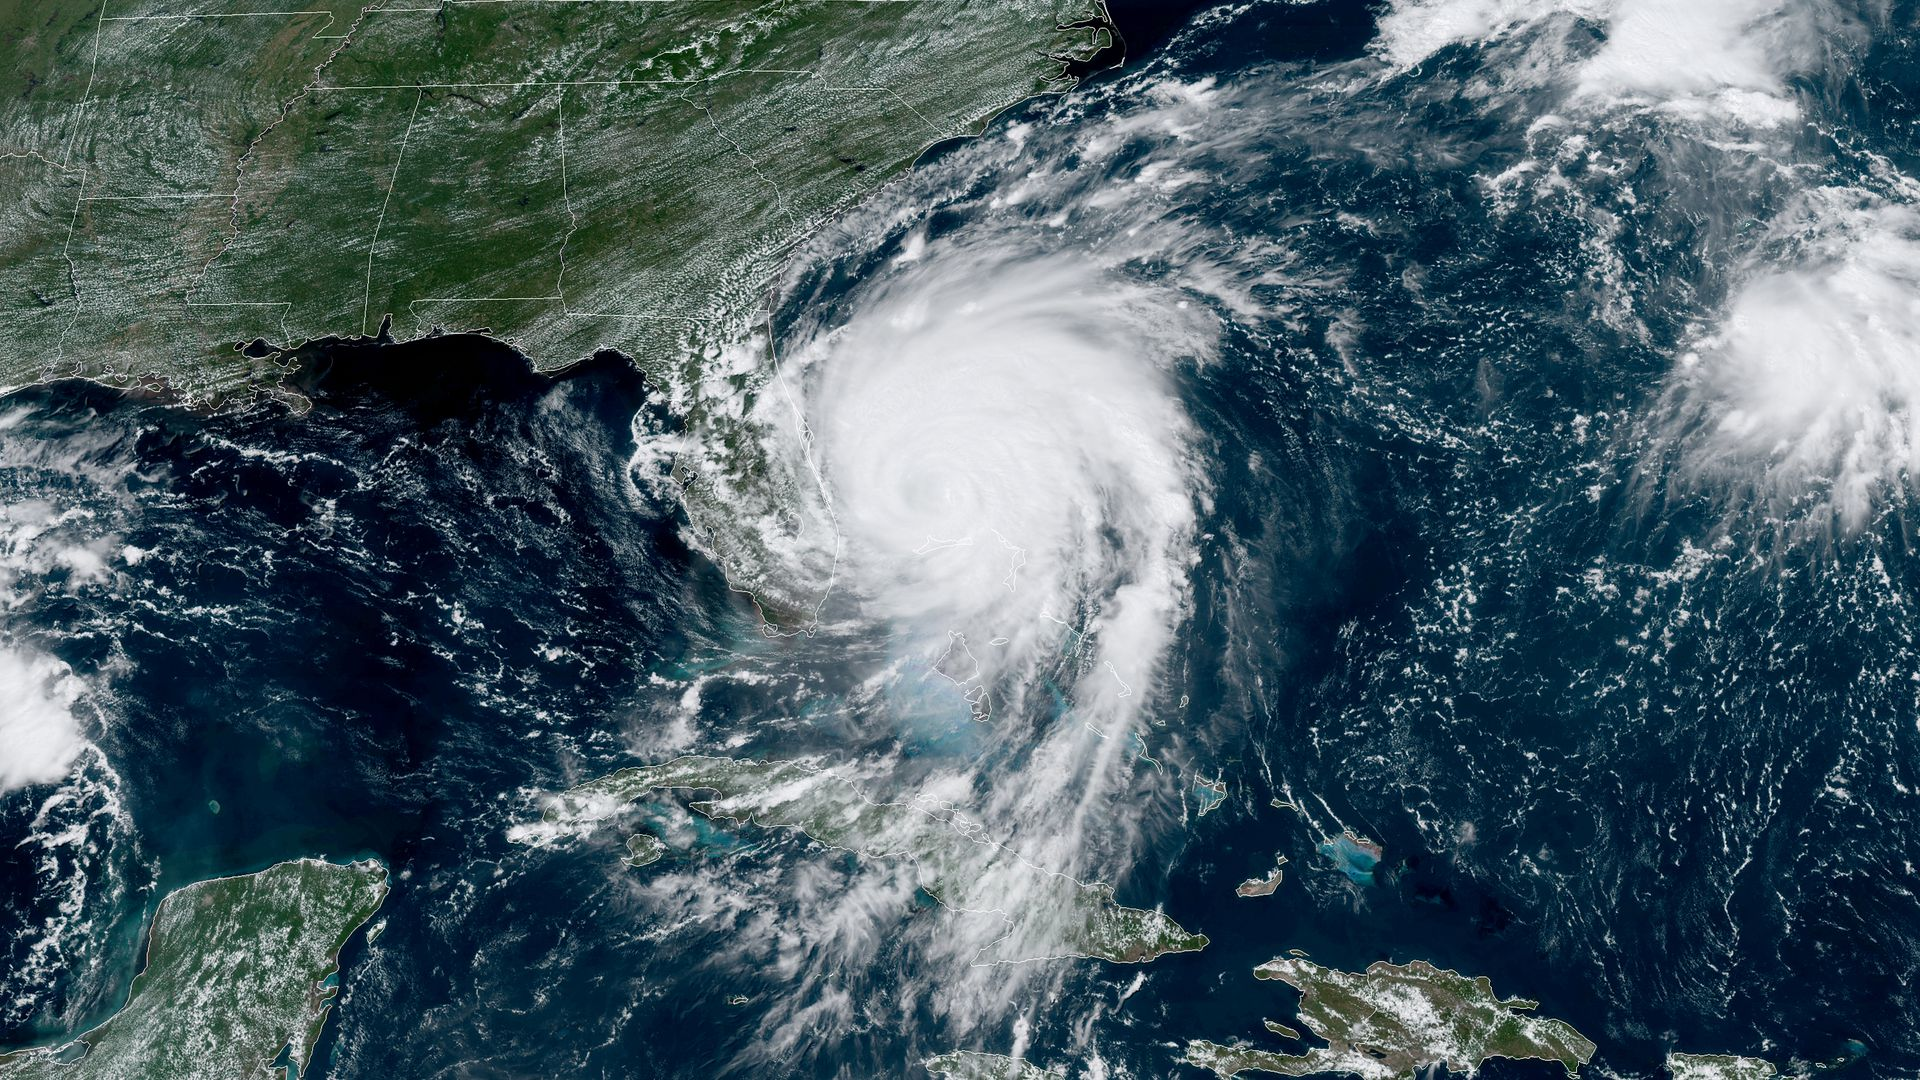 2019's big storms cost the U.S. an estimated $22 billion